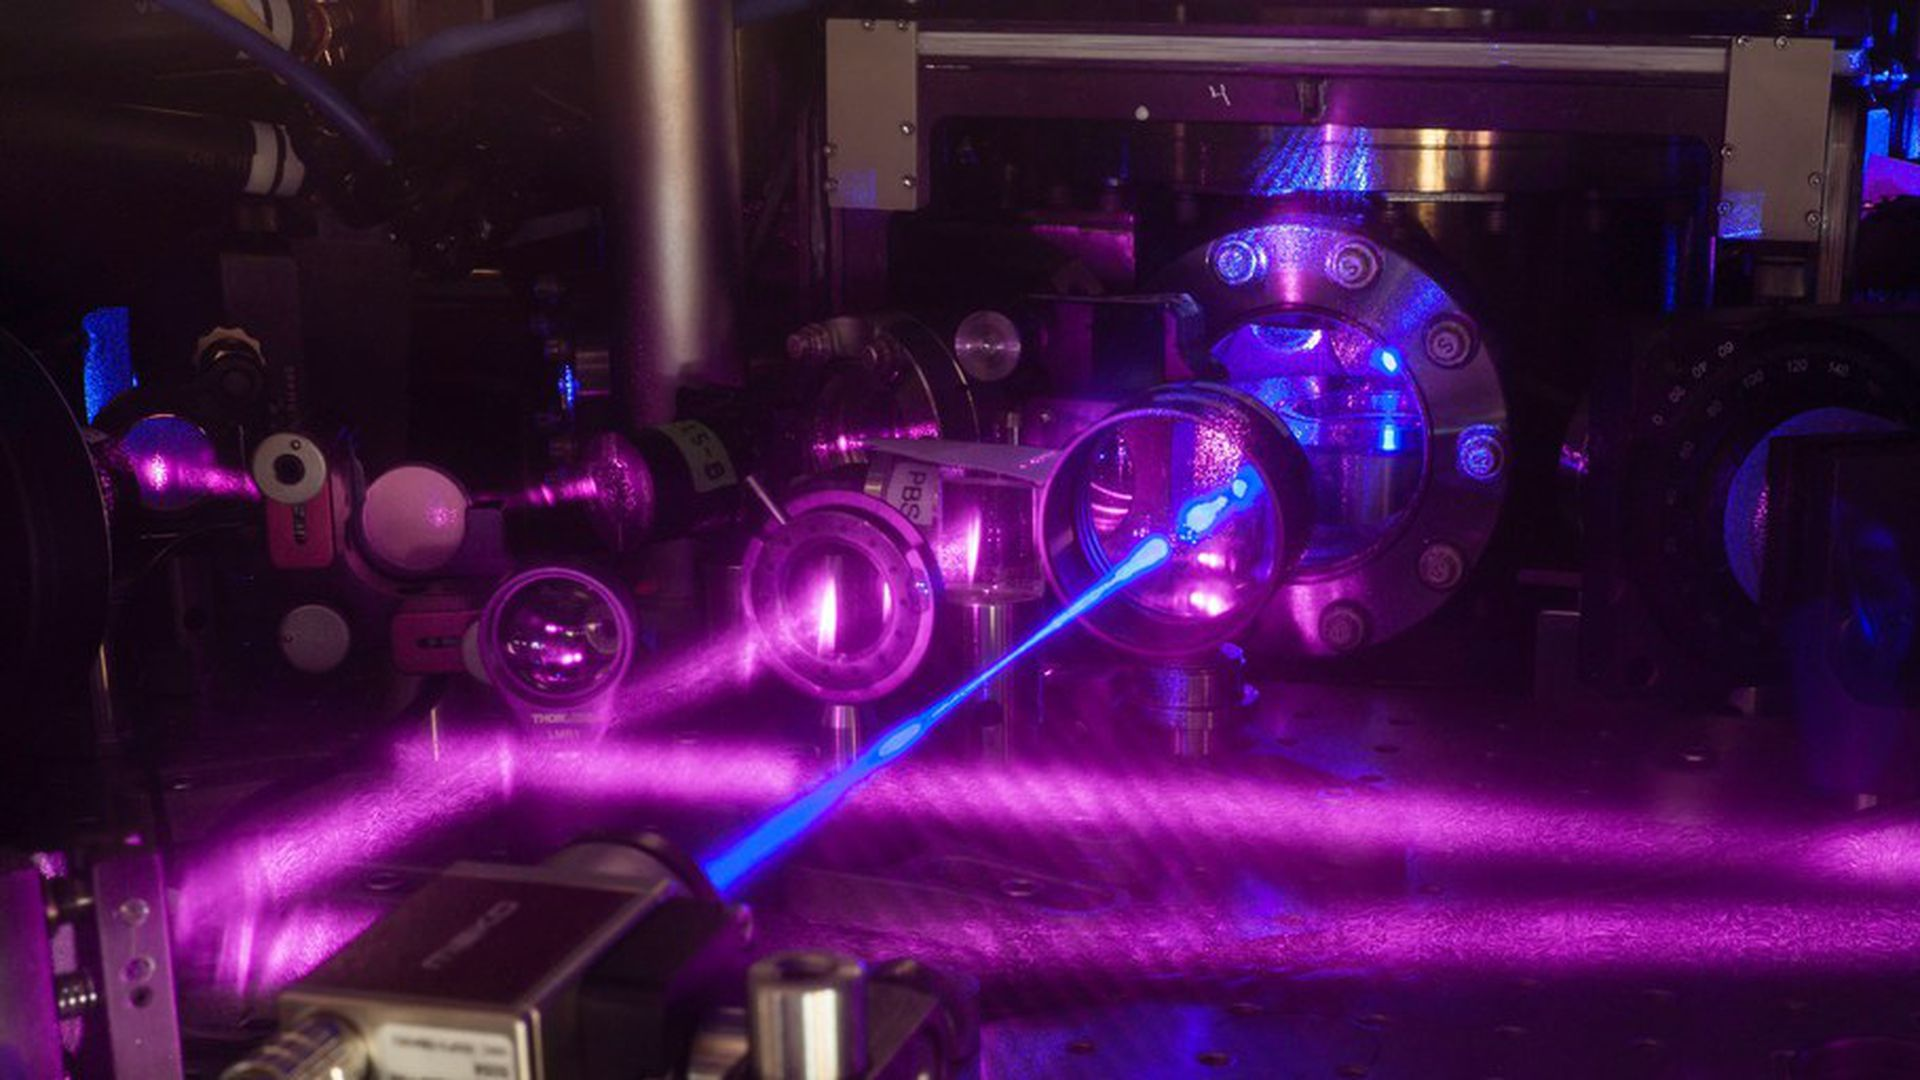 Researchers just built the world's most precise clock